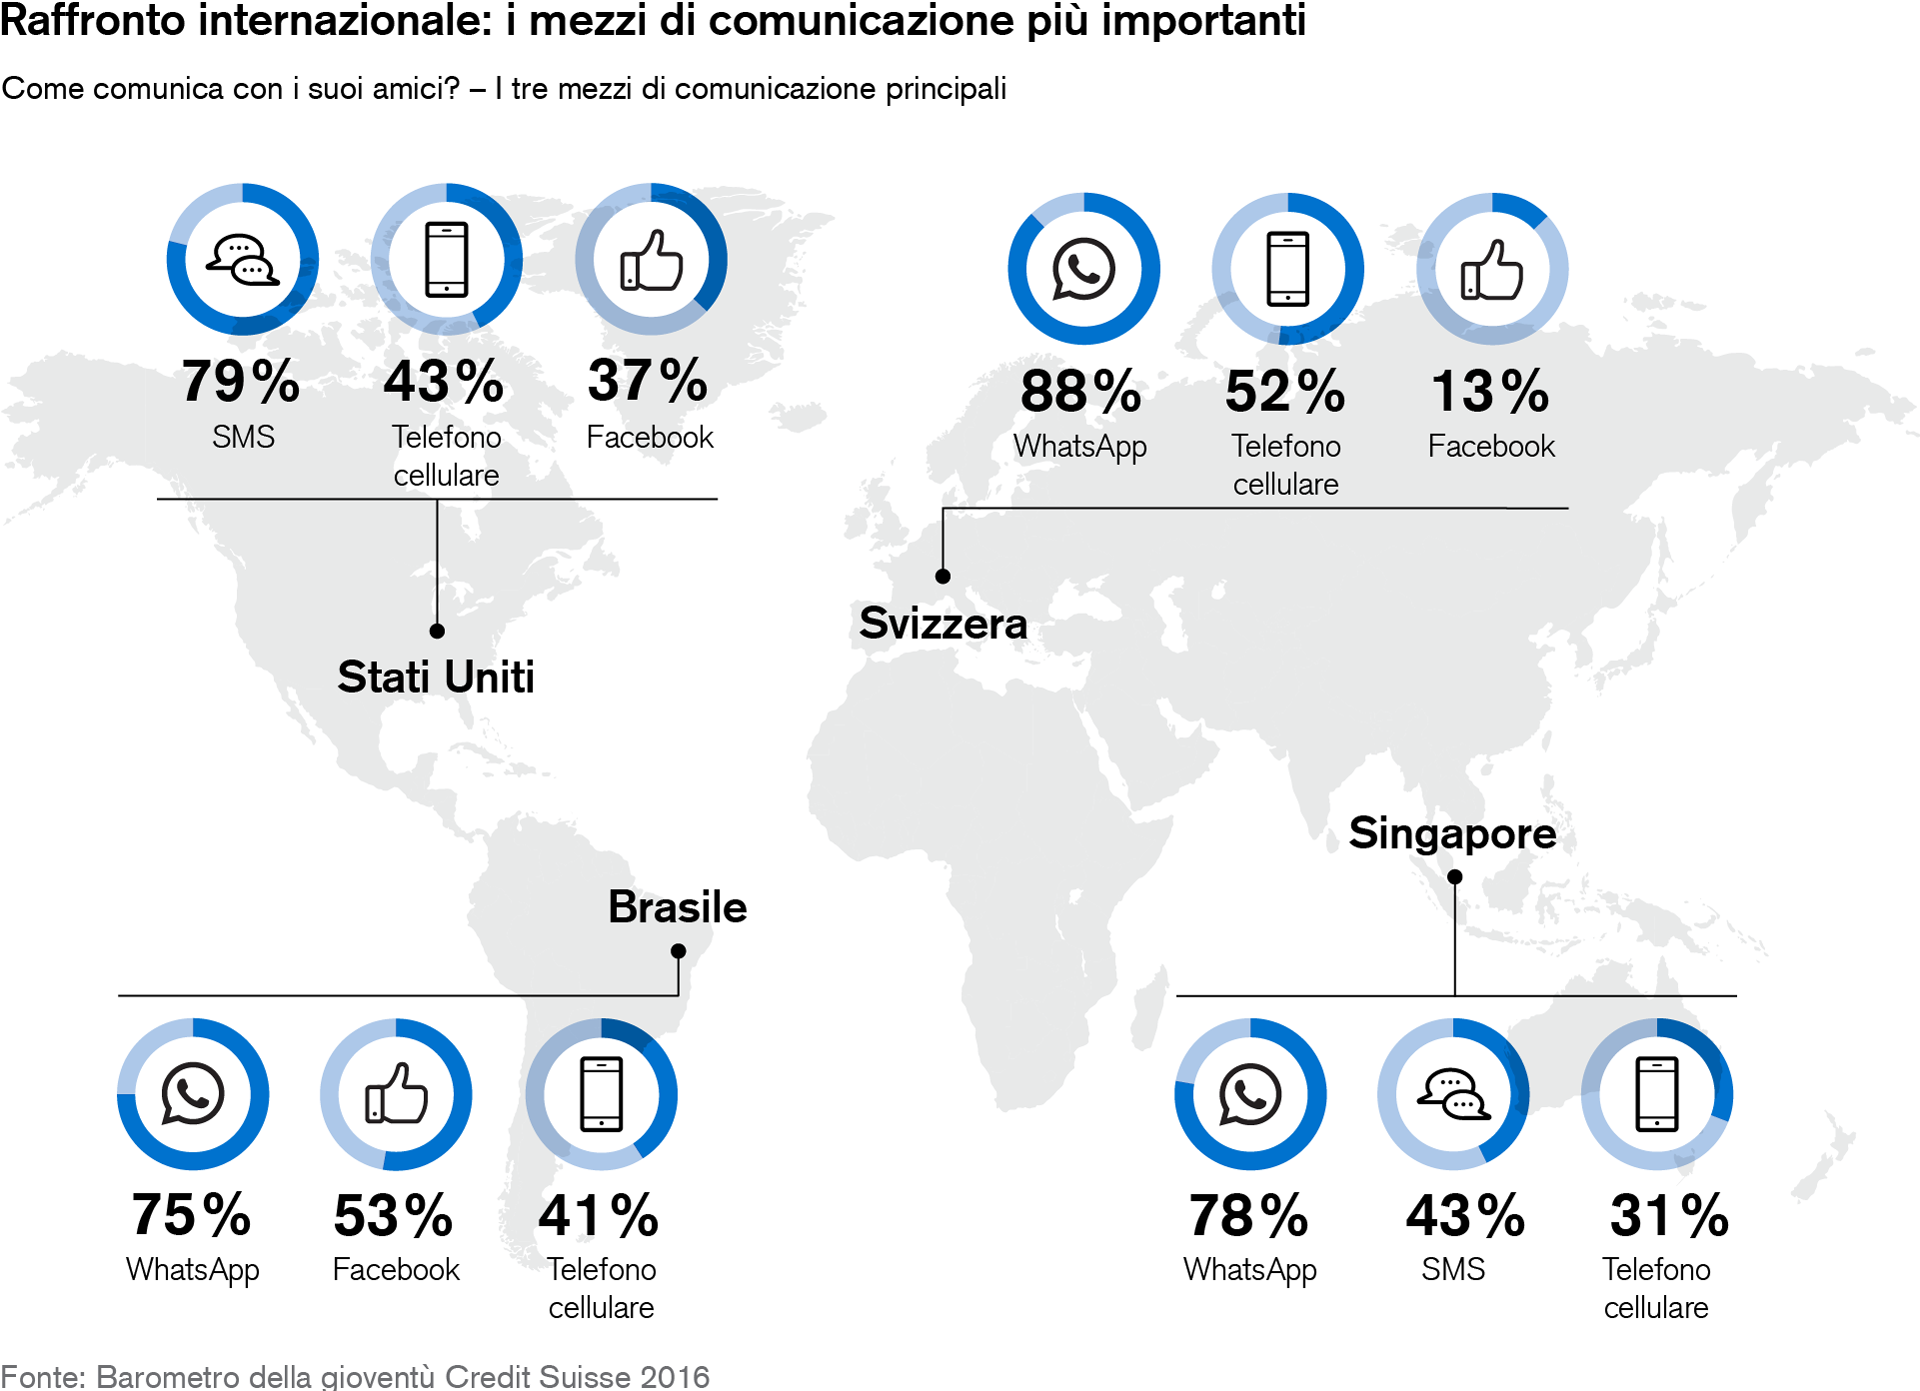 International comparison: Most important communication tools